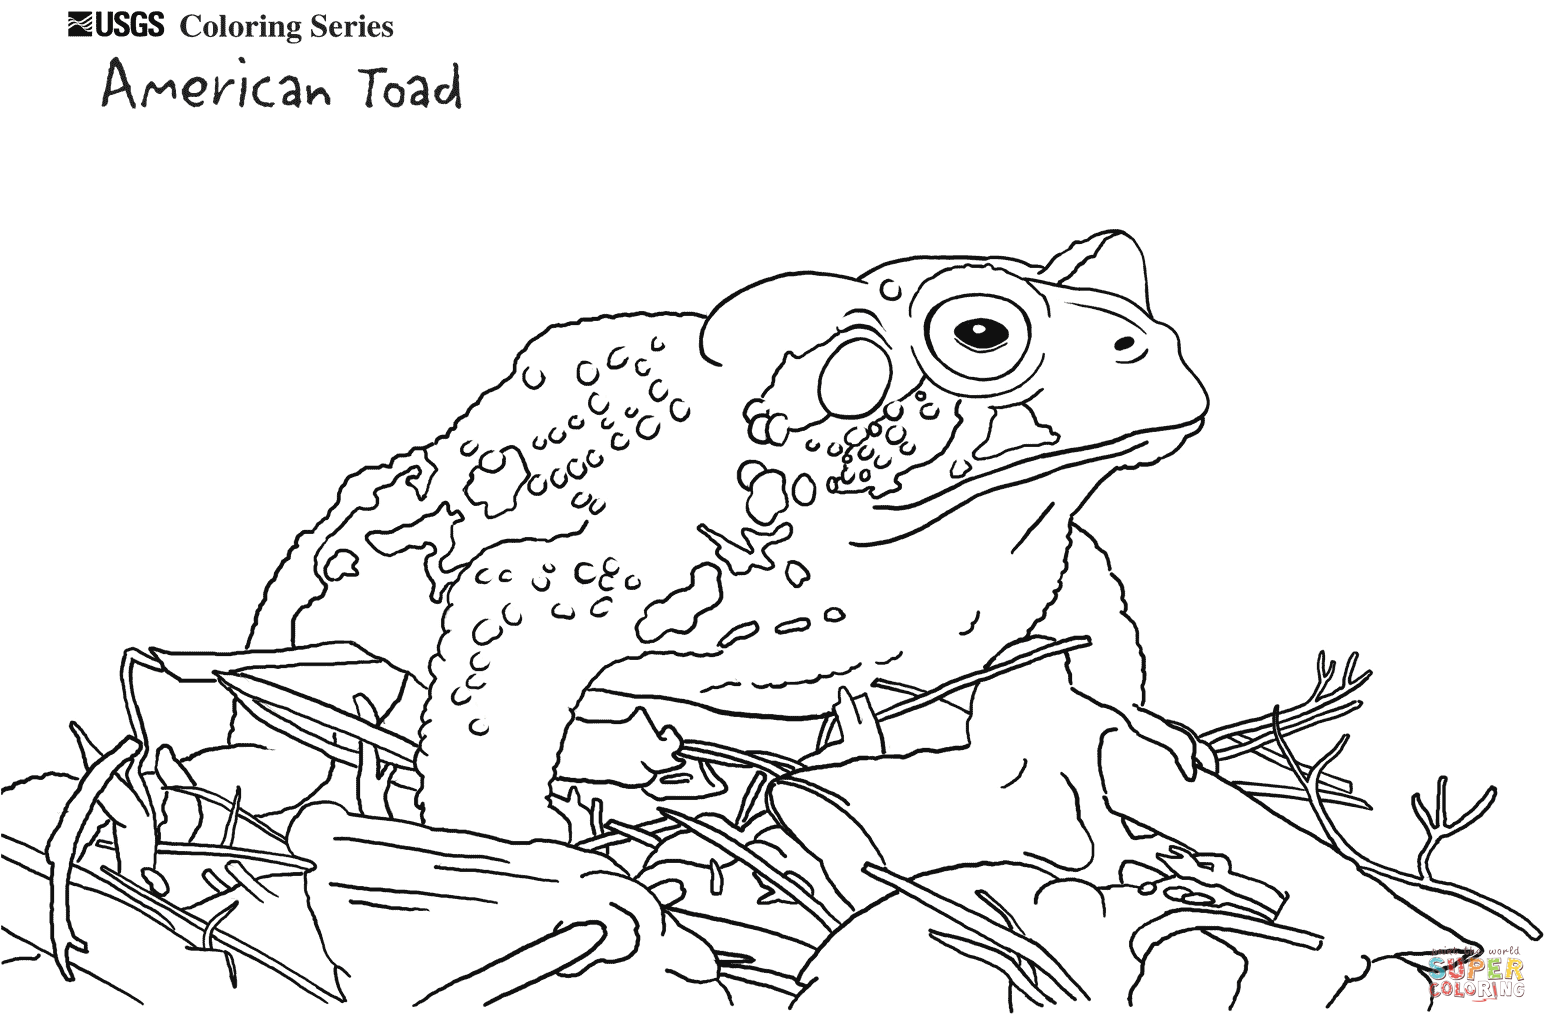 American Toad coloring #10, Download drawings